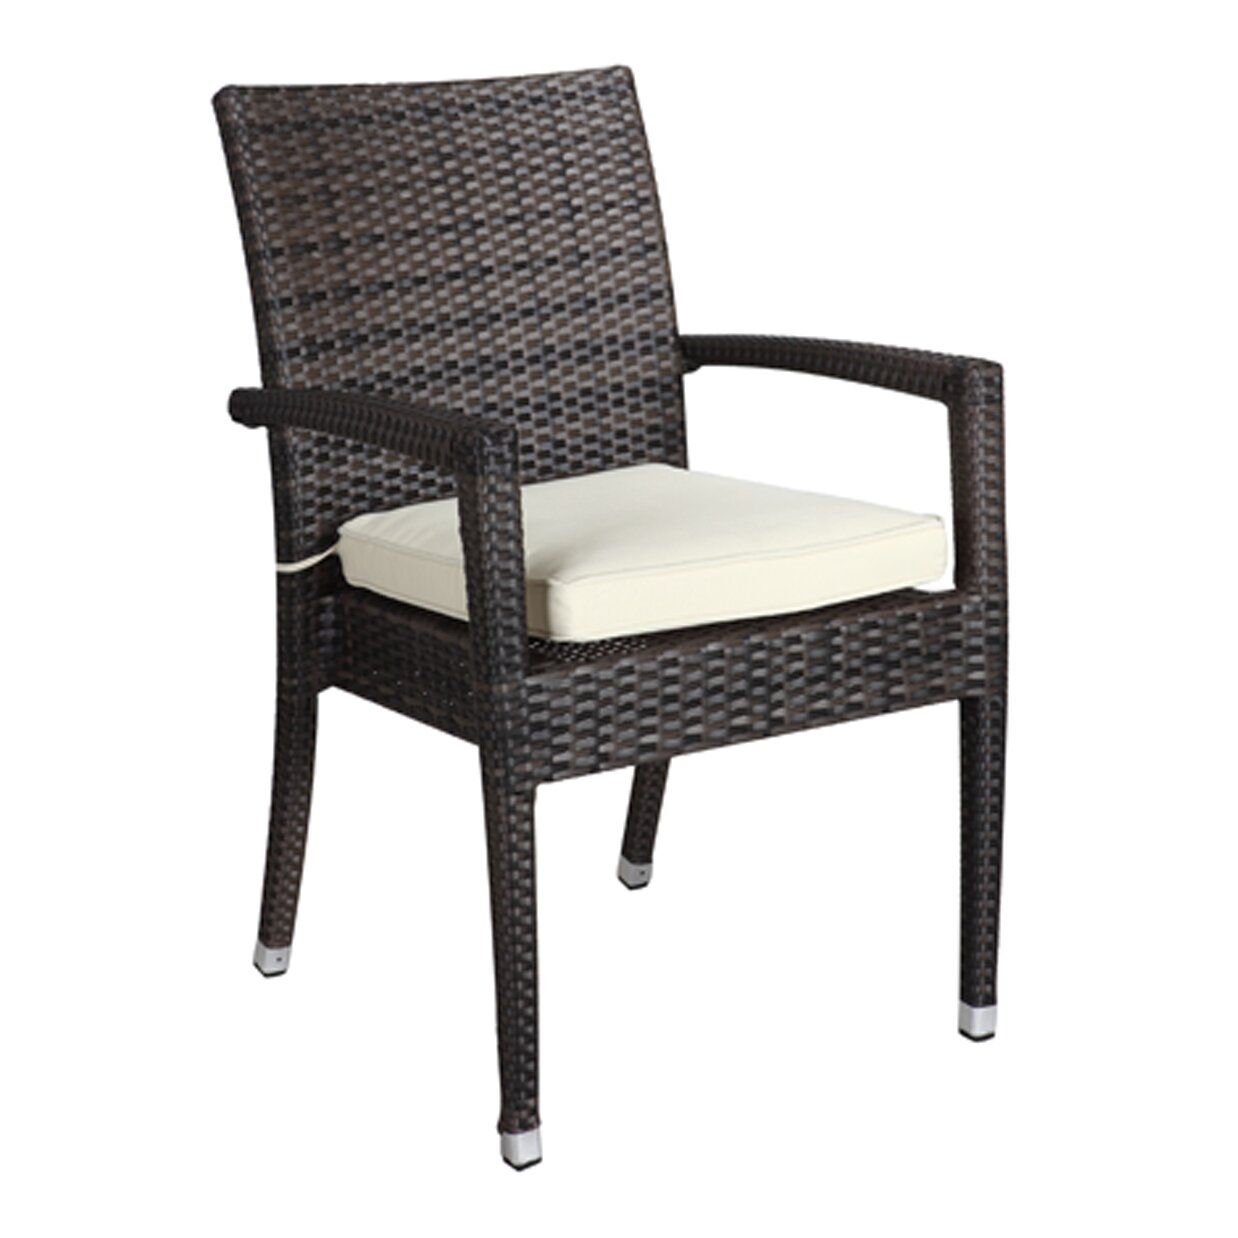 Rattan Outdoor Furniture Brighton Dining Arm Chair with ...